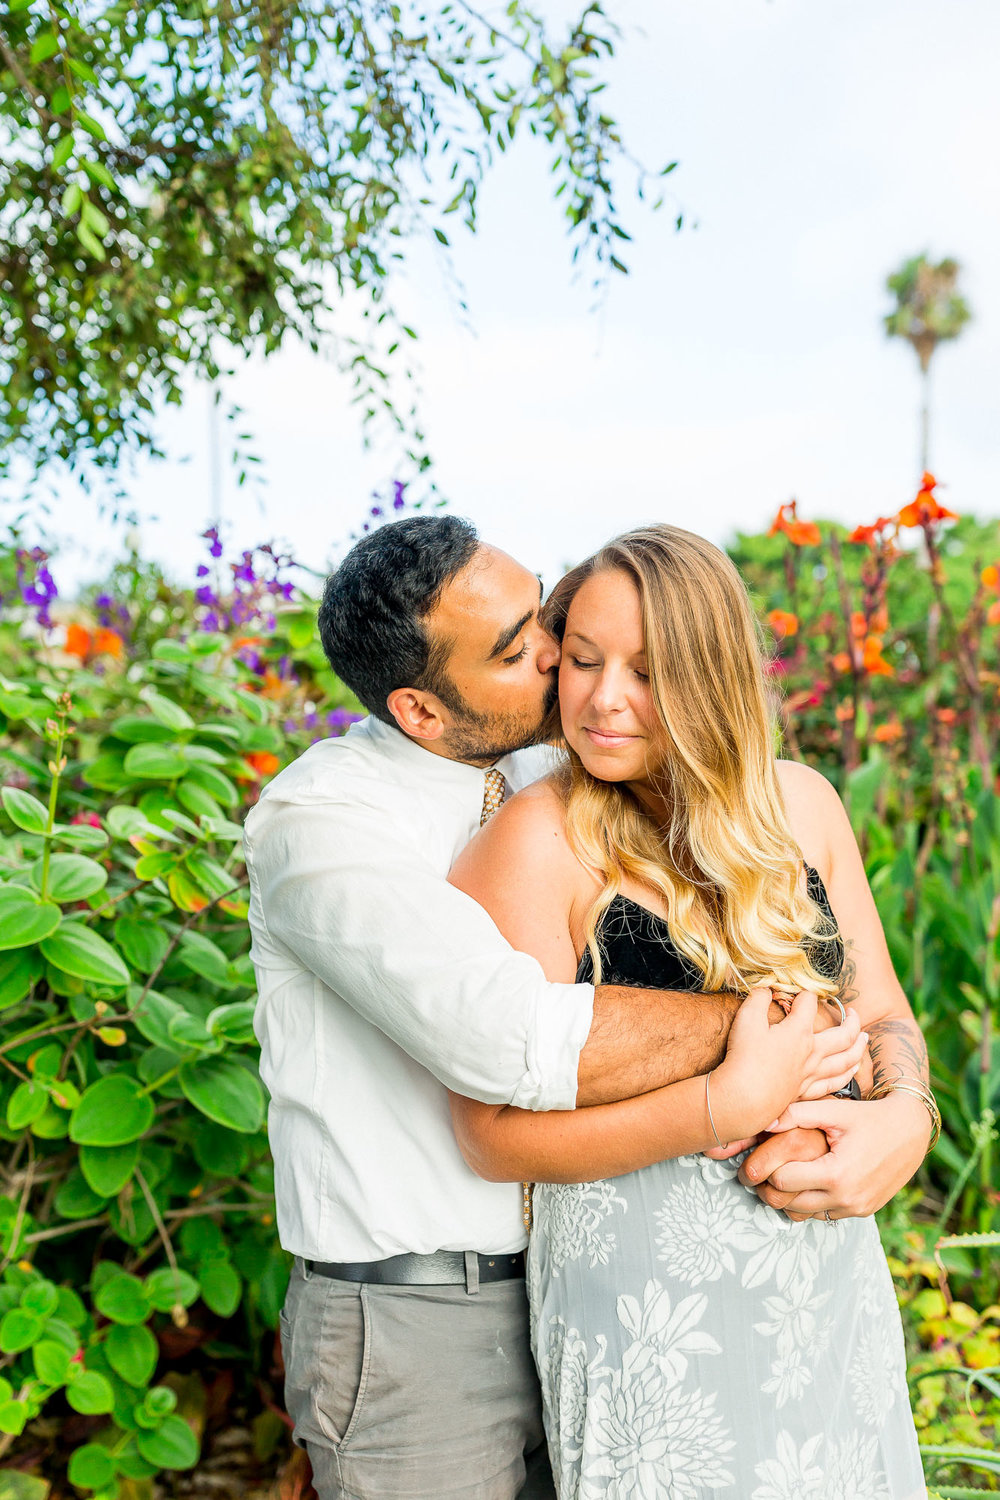 Justine_Puneet_Cardiff_Engagement_Session_025.jpg